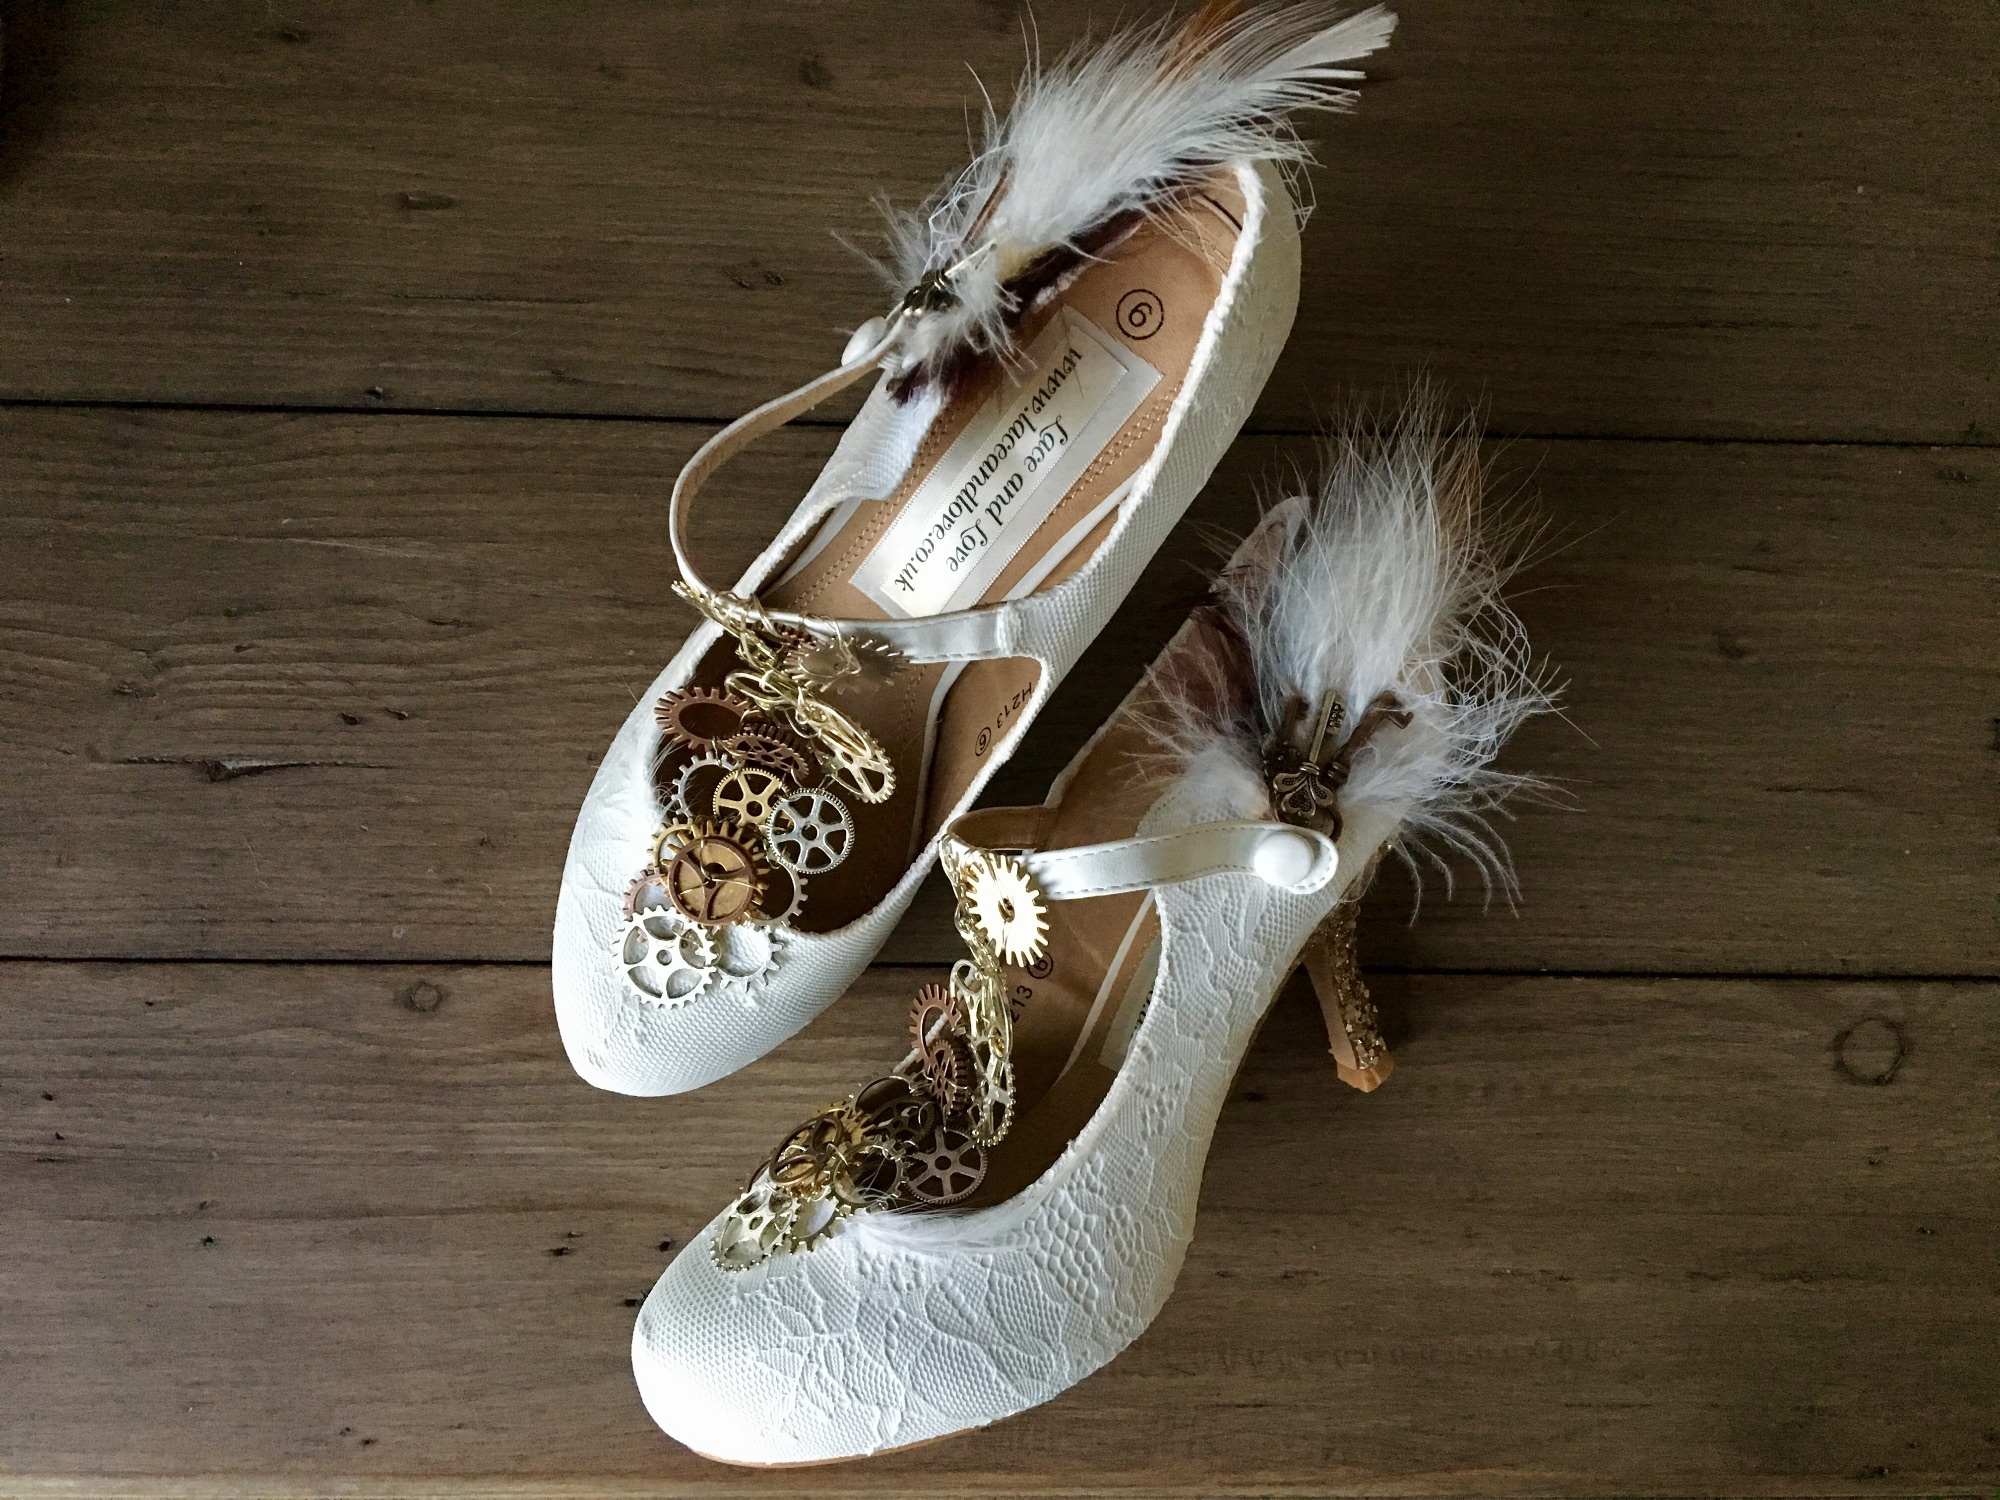 Custom steampunk shoes with cog t-bar and feathers